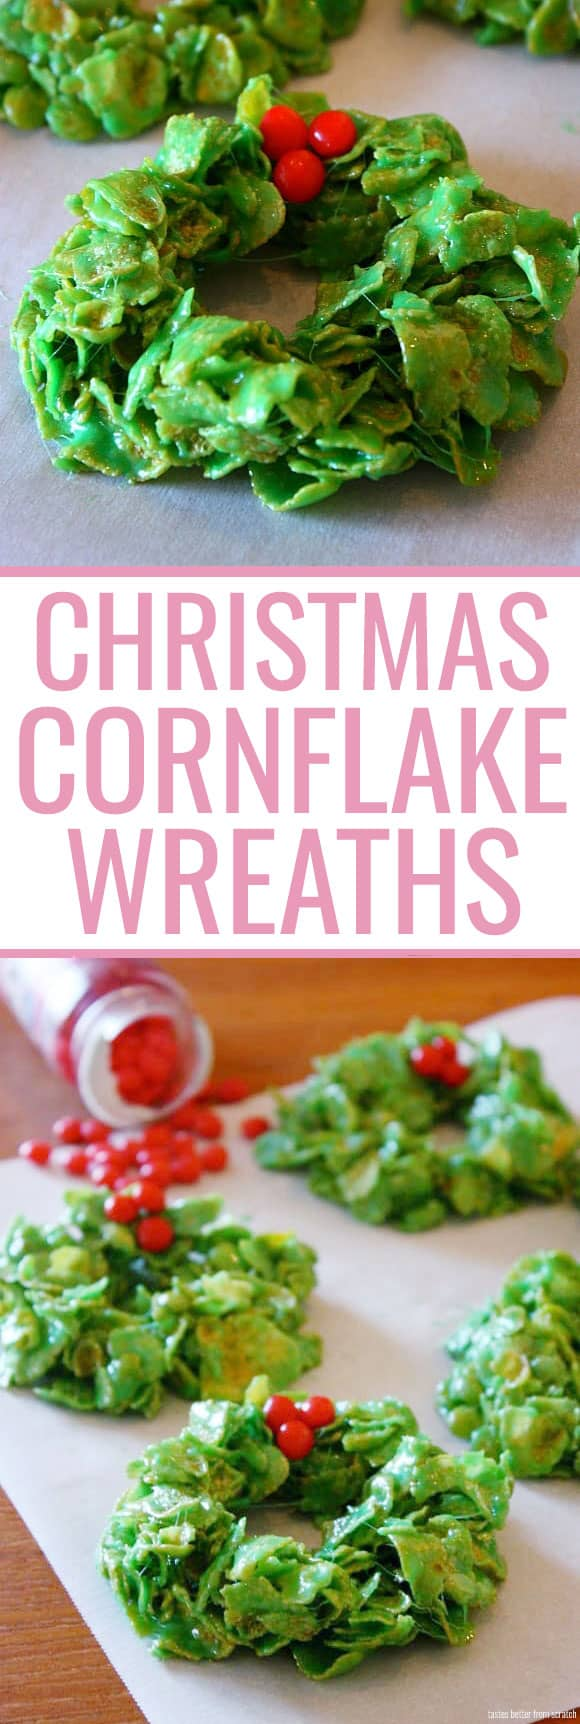 How adorable are these Christmas cornflake wreaths?! The marshmallow and cornflake treats are so good, they're perfect for Christmas parties and such a fun treat to make as a family!